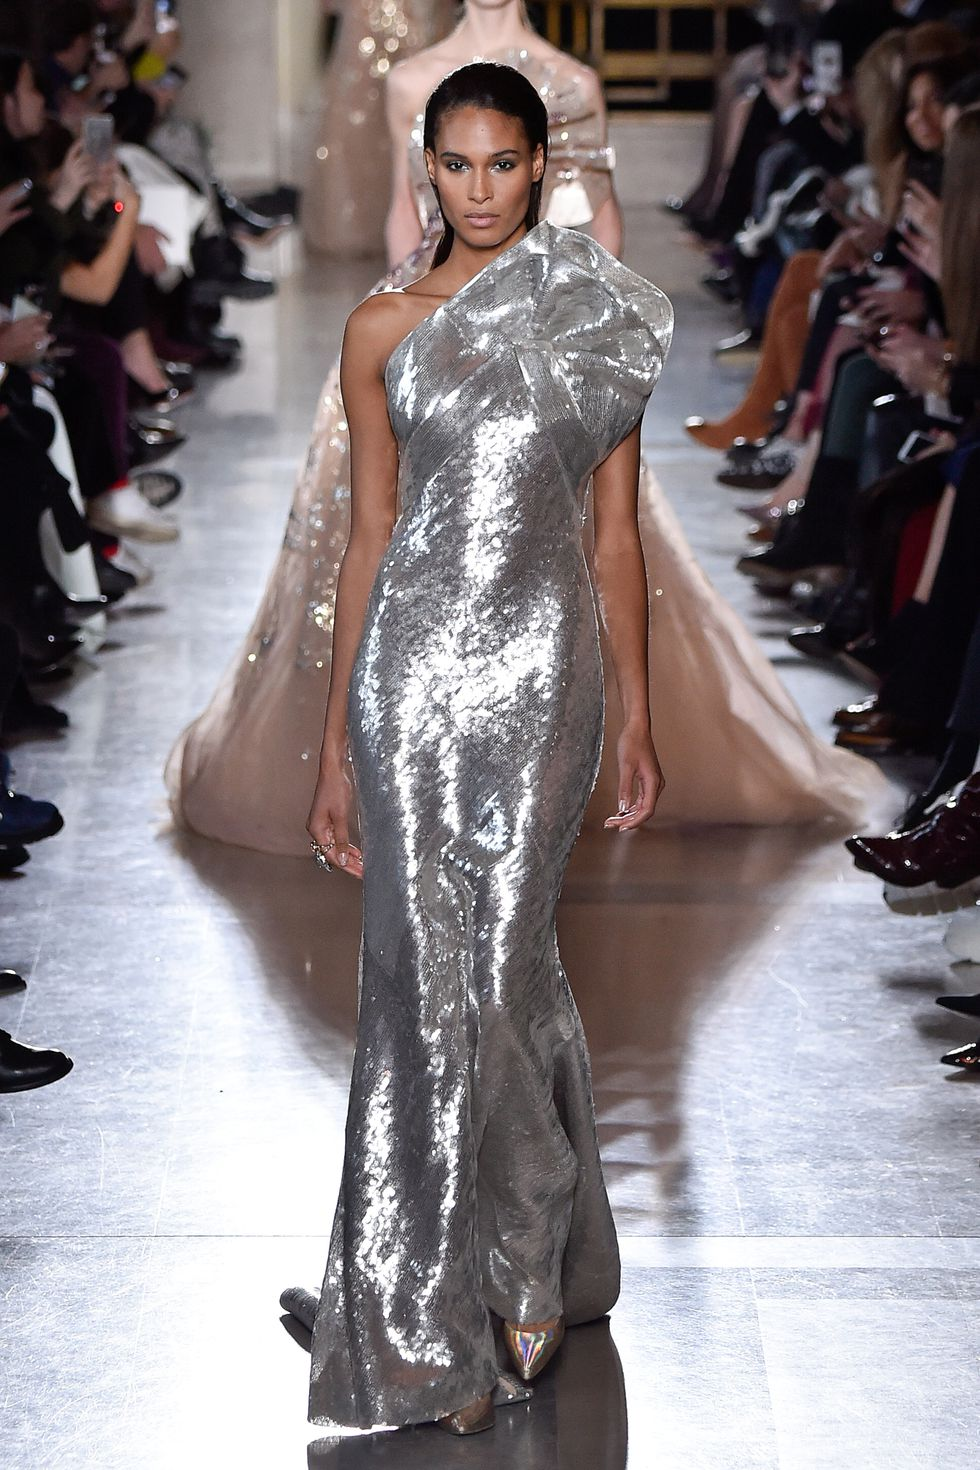 elie saab couture ss19 5 1548331916 - elie-saab-couture-ss19-5-1548331916